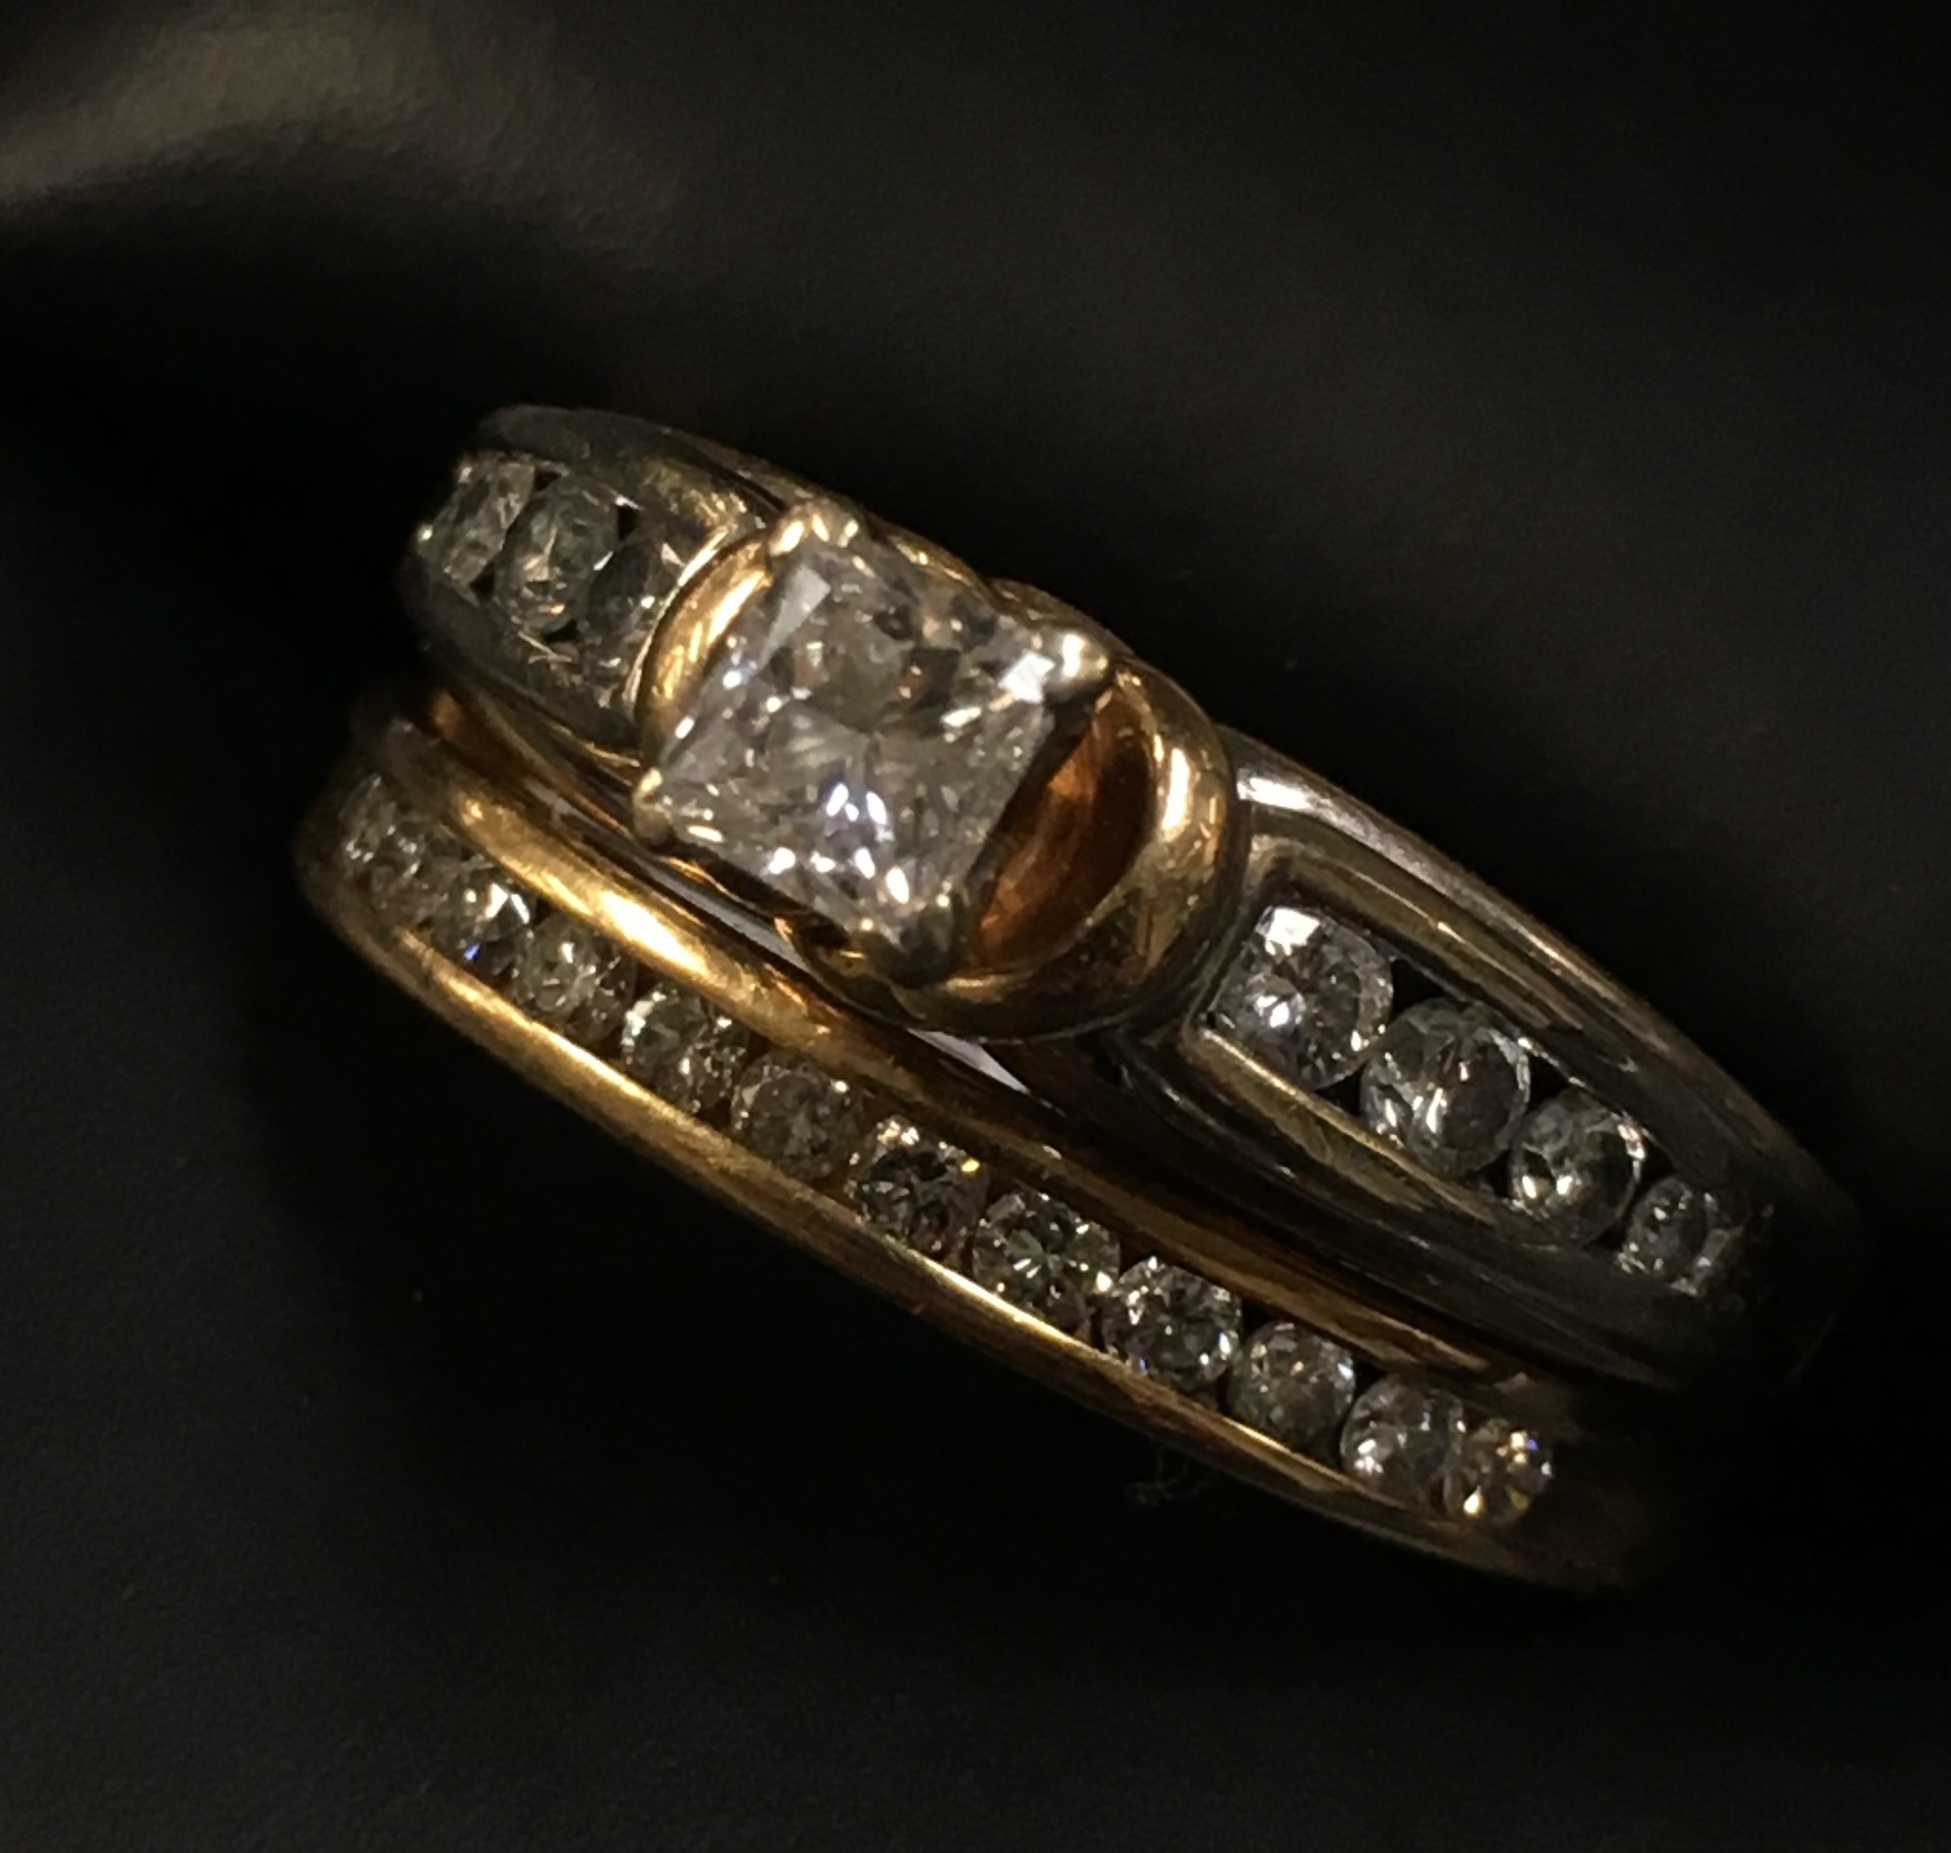 14KT YELLOW GOLD APPROX 1/4 PRINCESS CUT DIAMOND RING. SIZE: 7